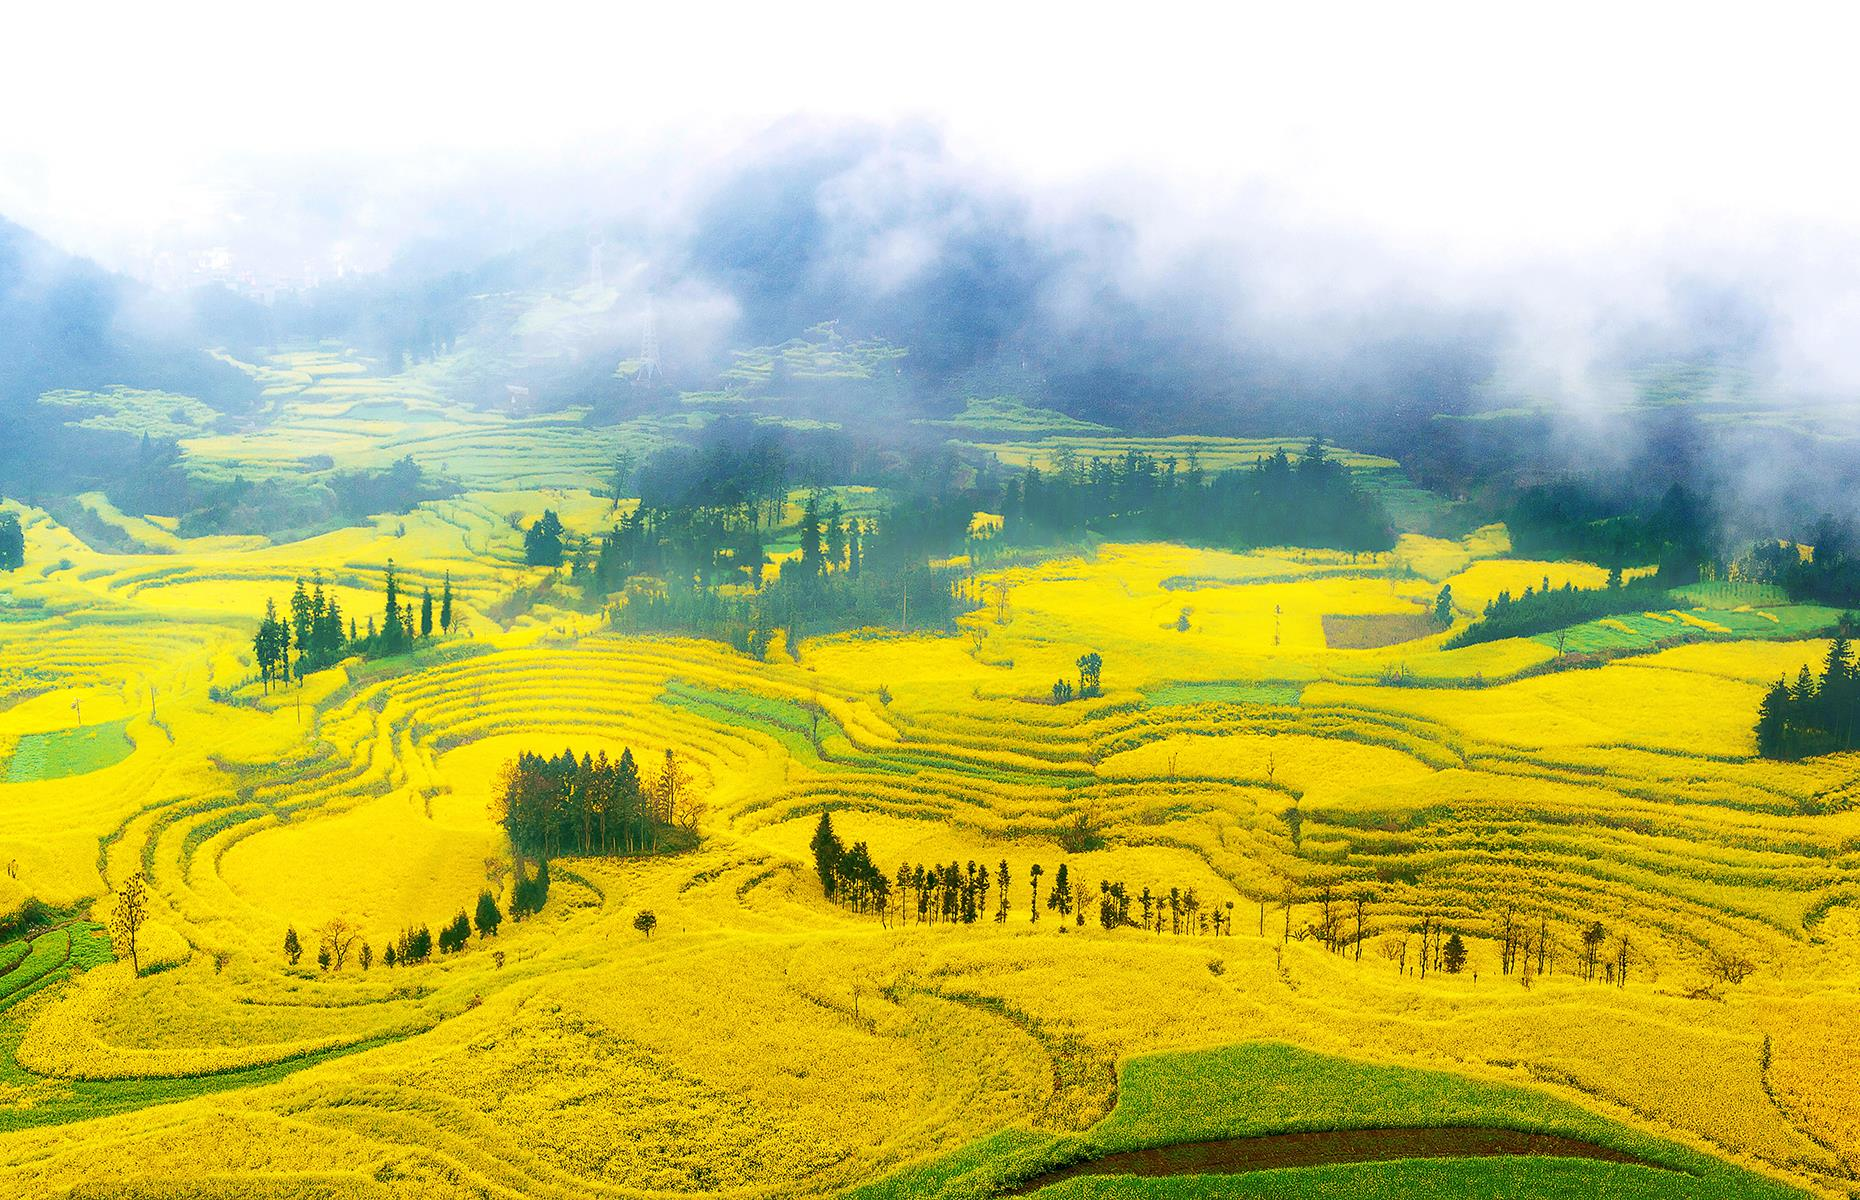 Slide 25 of 41: Another incredible event where man and nature come together, every spring 20 contiguous acres in Luoping in China are clad in an ocean of yellow. The county is home to one of the world's largest plantations of rapeseed flowers, also known as canola. As the golden buds bloom every February and March, the unique beauty is celebrated during Canola Flower Festival.